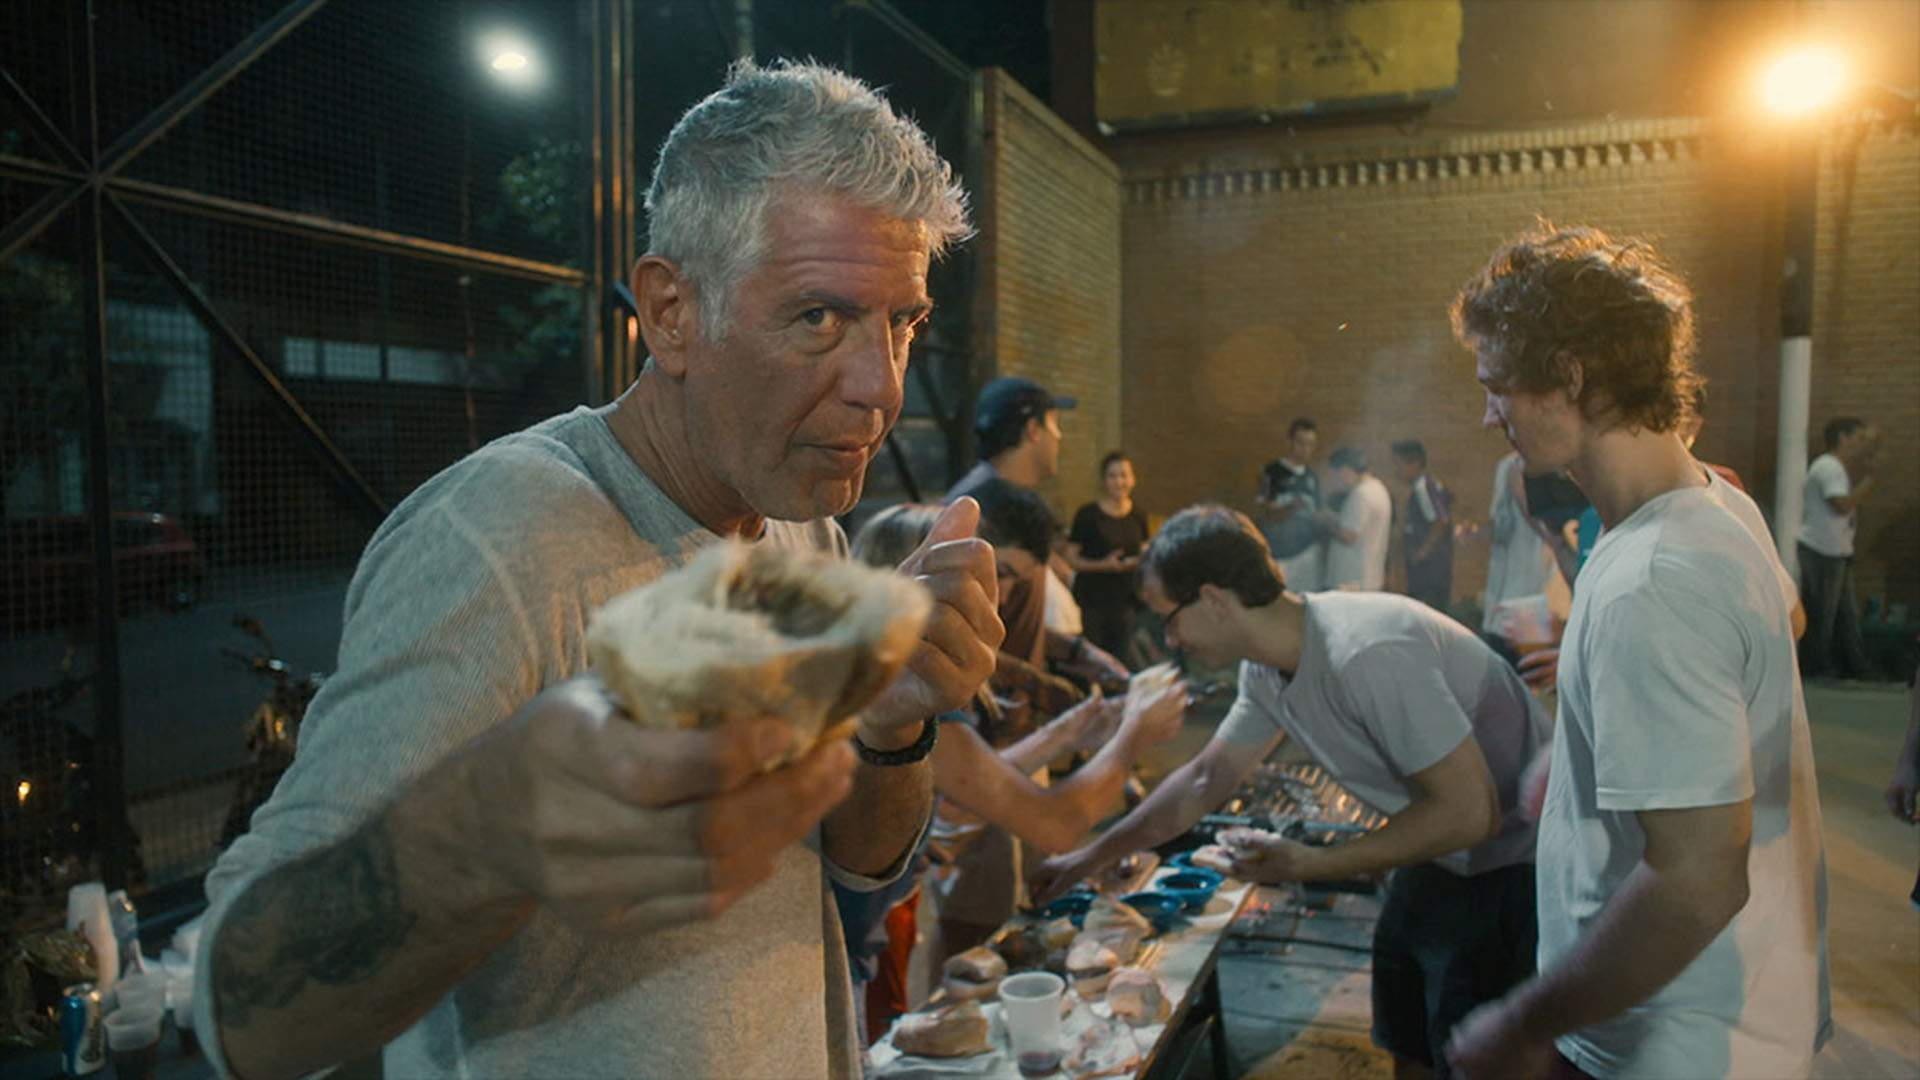 New Anthony Bourdain Documentary 'Roadrunner' Has Dropped an Unsurprisingly Emotional Trailer